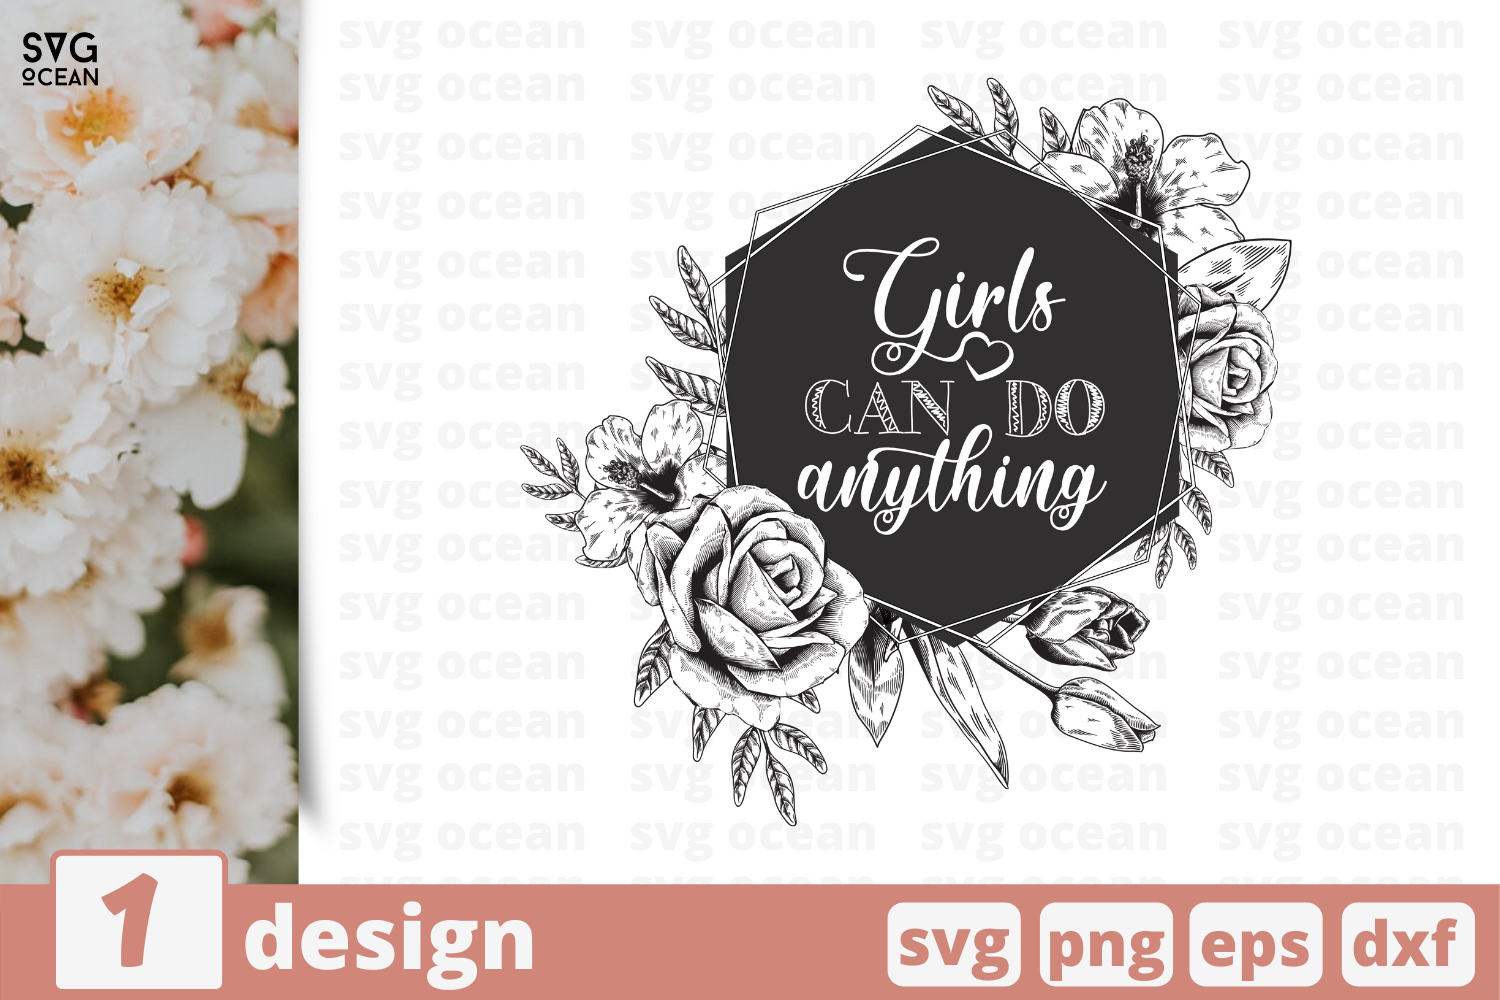 Download Free Girls Can Do Anything Graphic By Svgocean Creative Fabrica for Cricut Explore, Silhouette and other cutting machines.